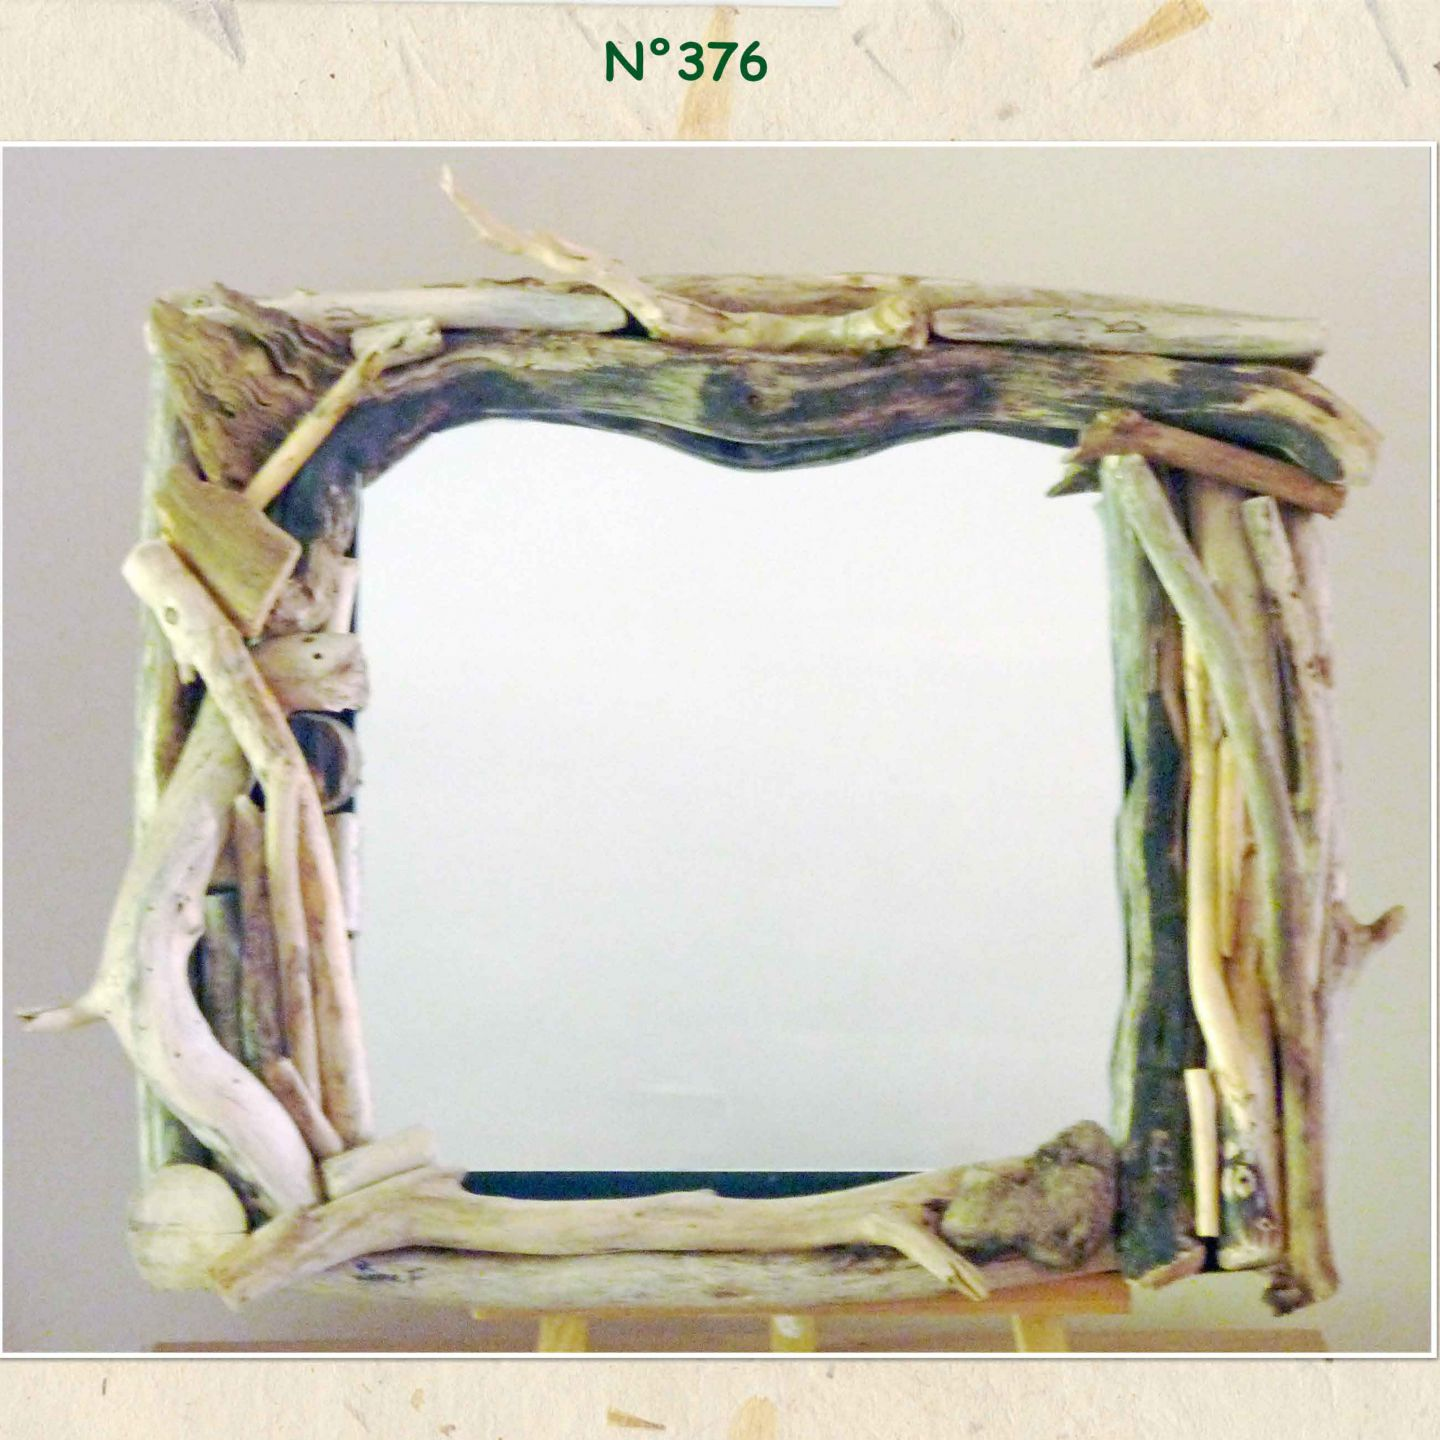 N 376 creation de d co en bois flott for Achat miroir bois flotte